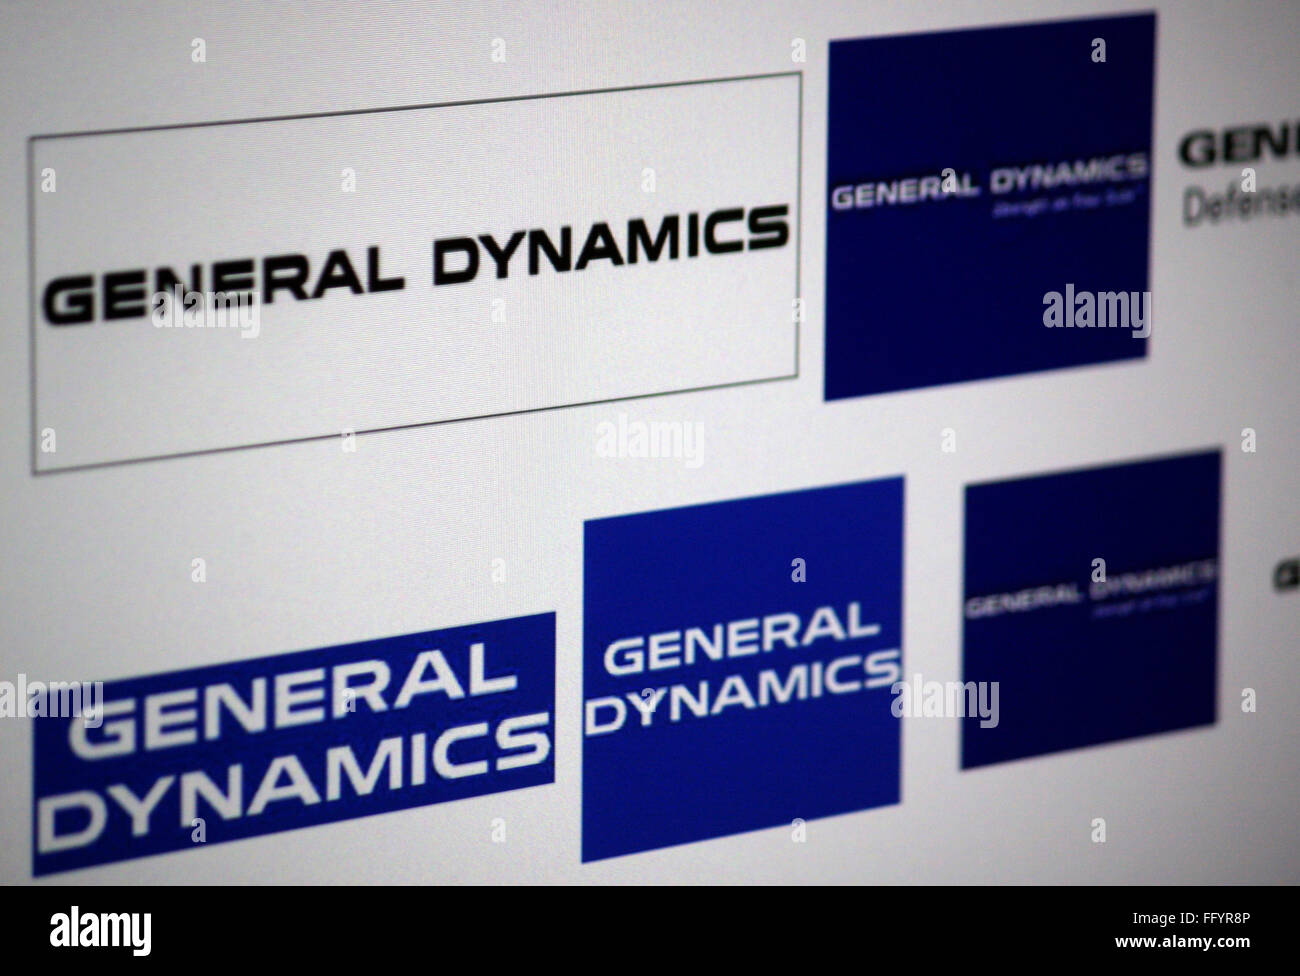 Markenname: 'General Dynamics'. - Stock Image